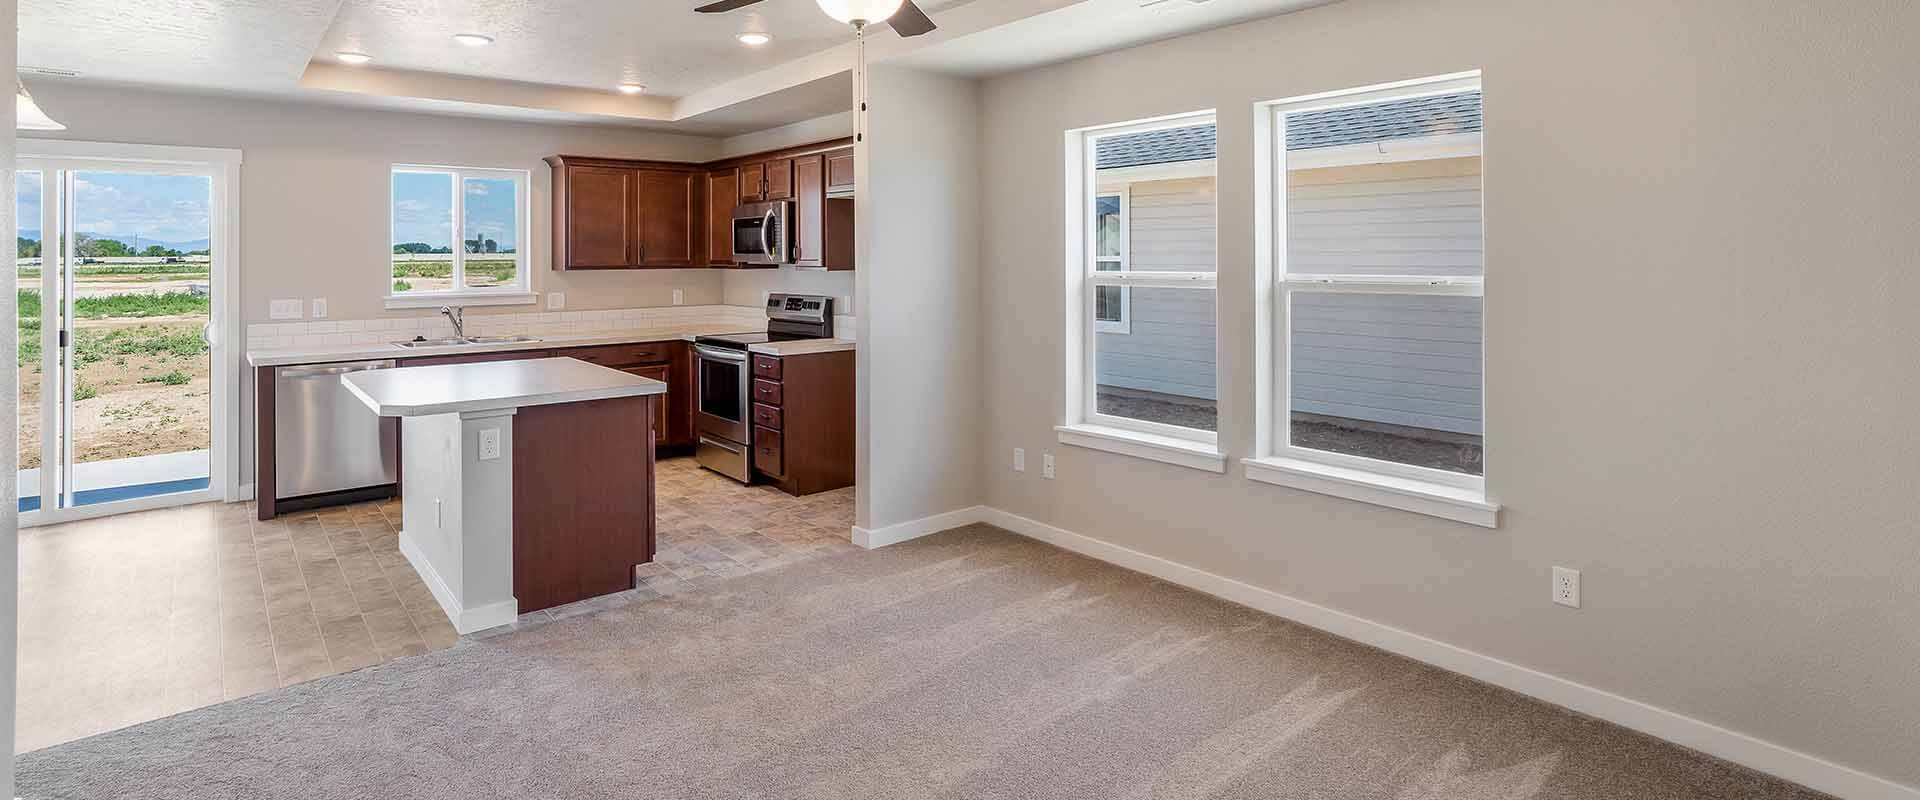 Huckleberry_Hubble_Homes_New_Homes_Boise_0002_Great Room - Huckleberry -17930 Hensley Ridge Pl-5.jpg